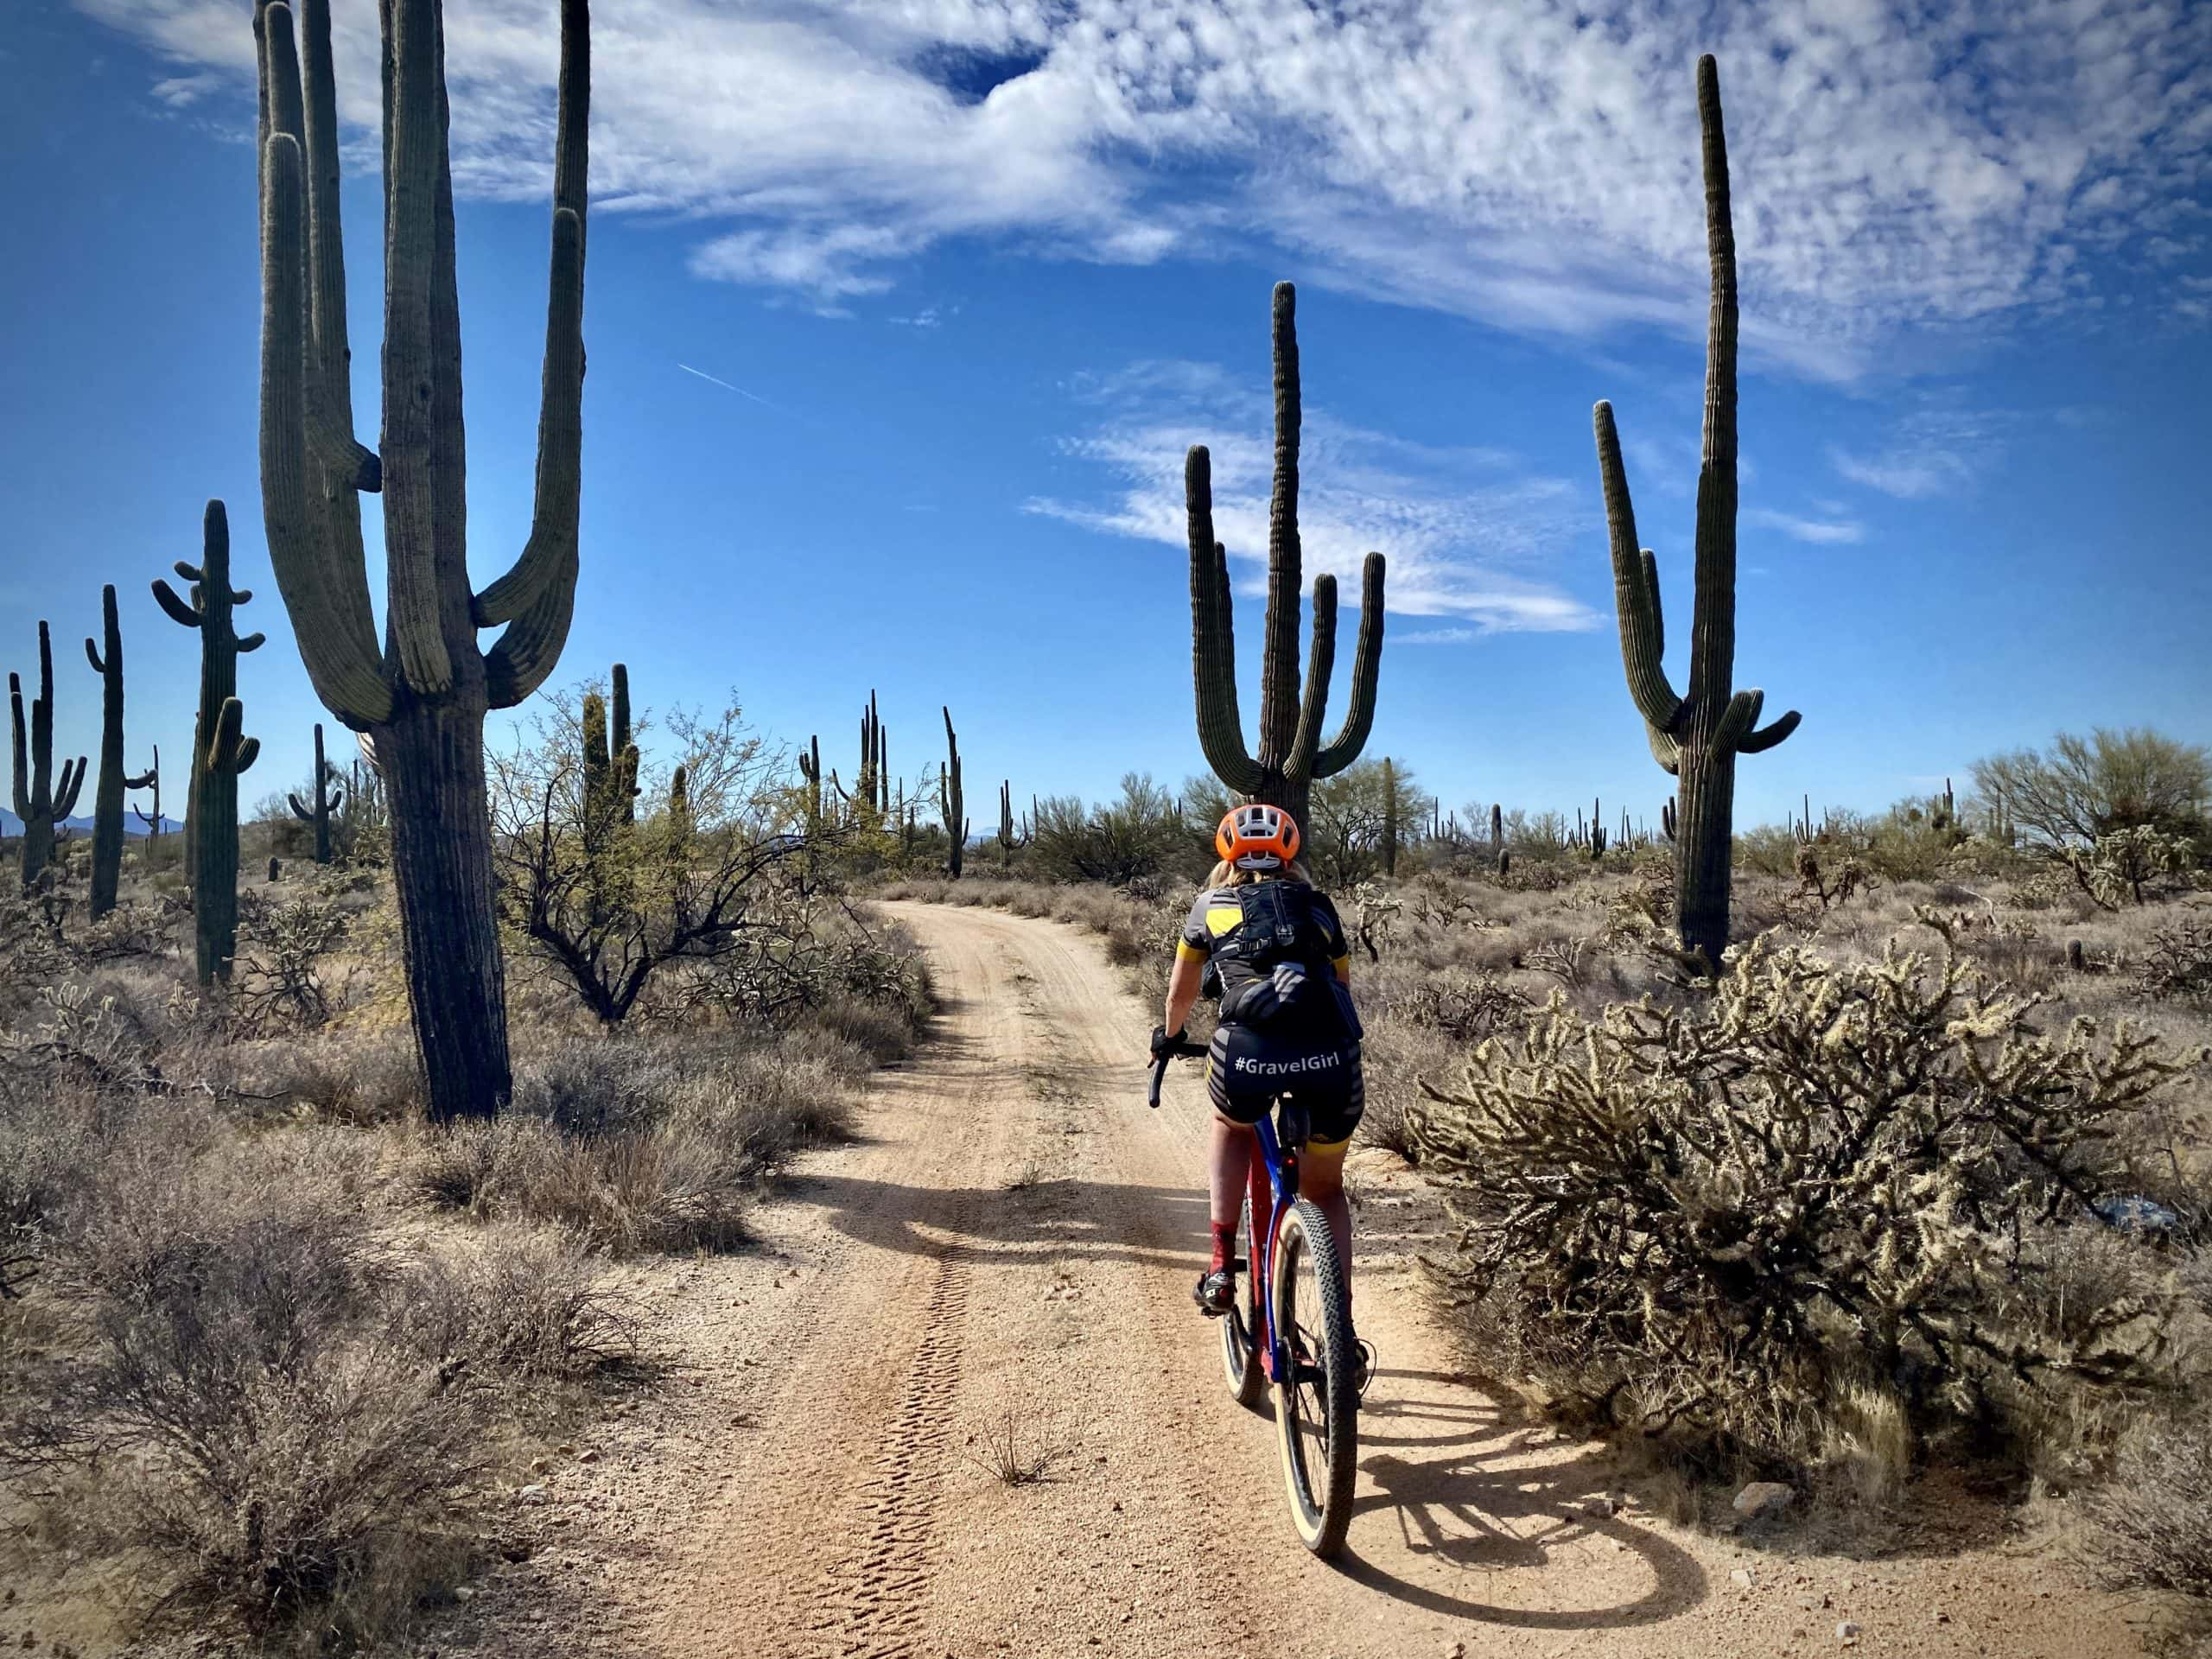 Gravel cyclist riding through a Saguaro Cactus forest in the Sonoran desert.